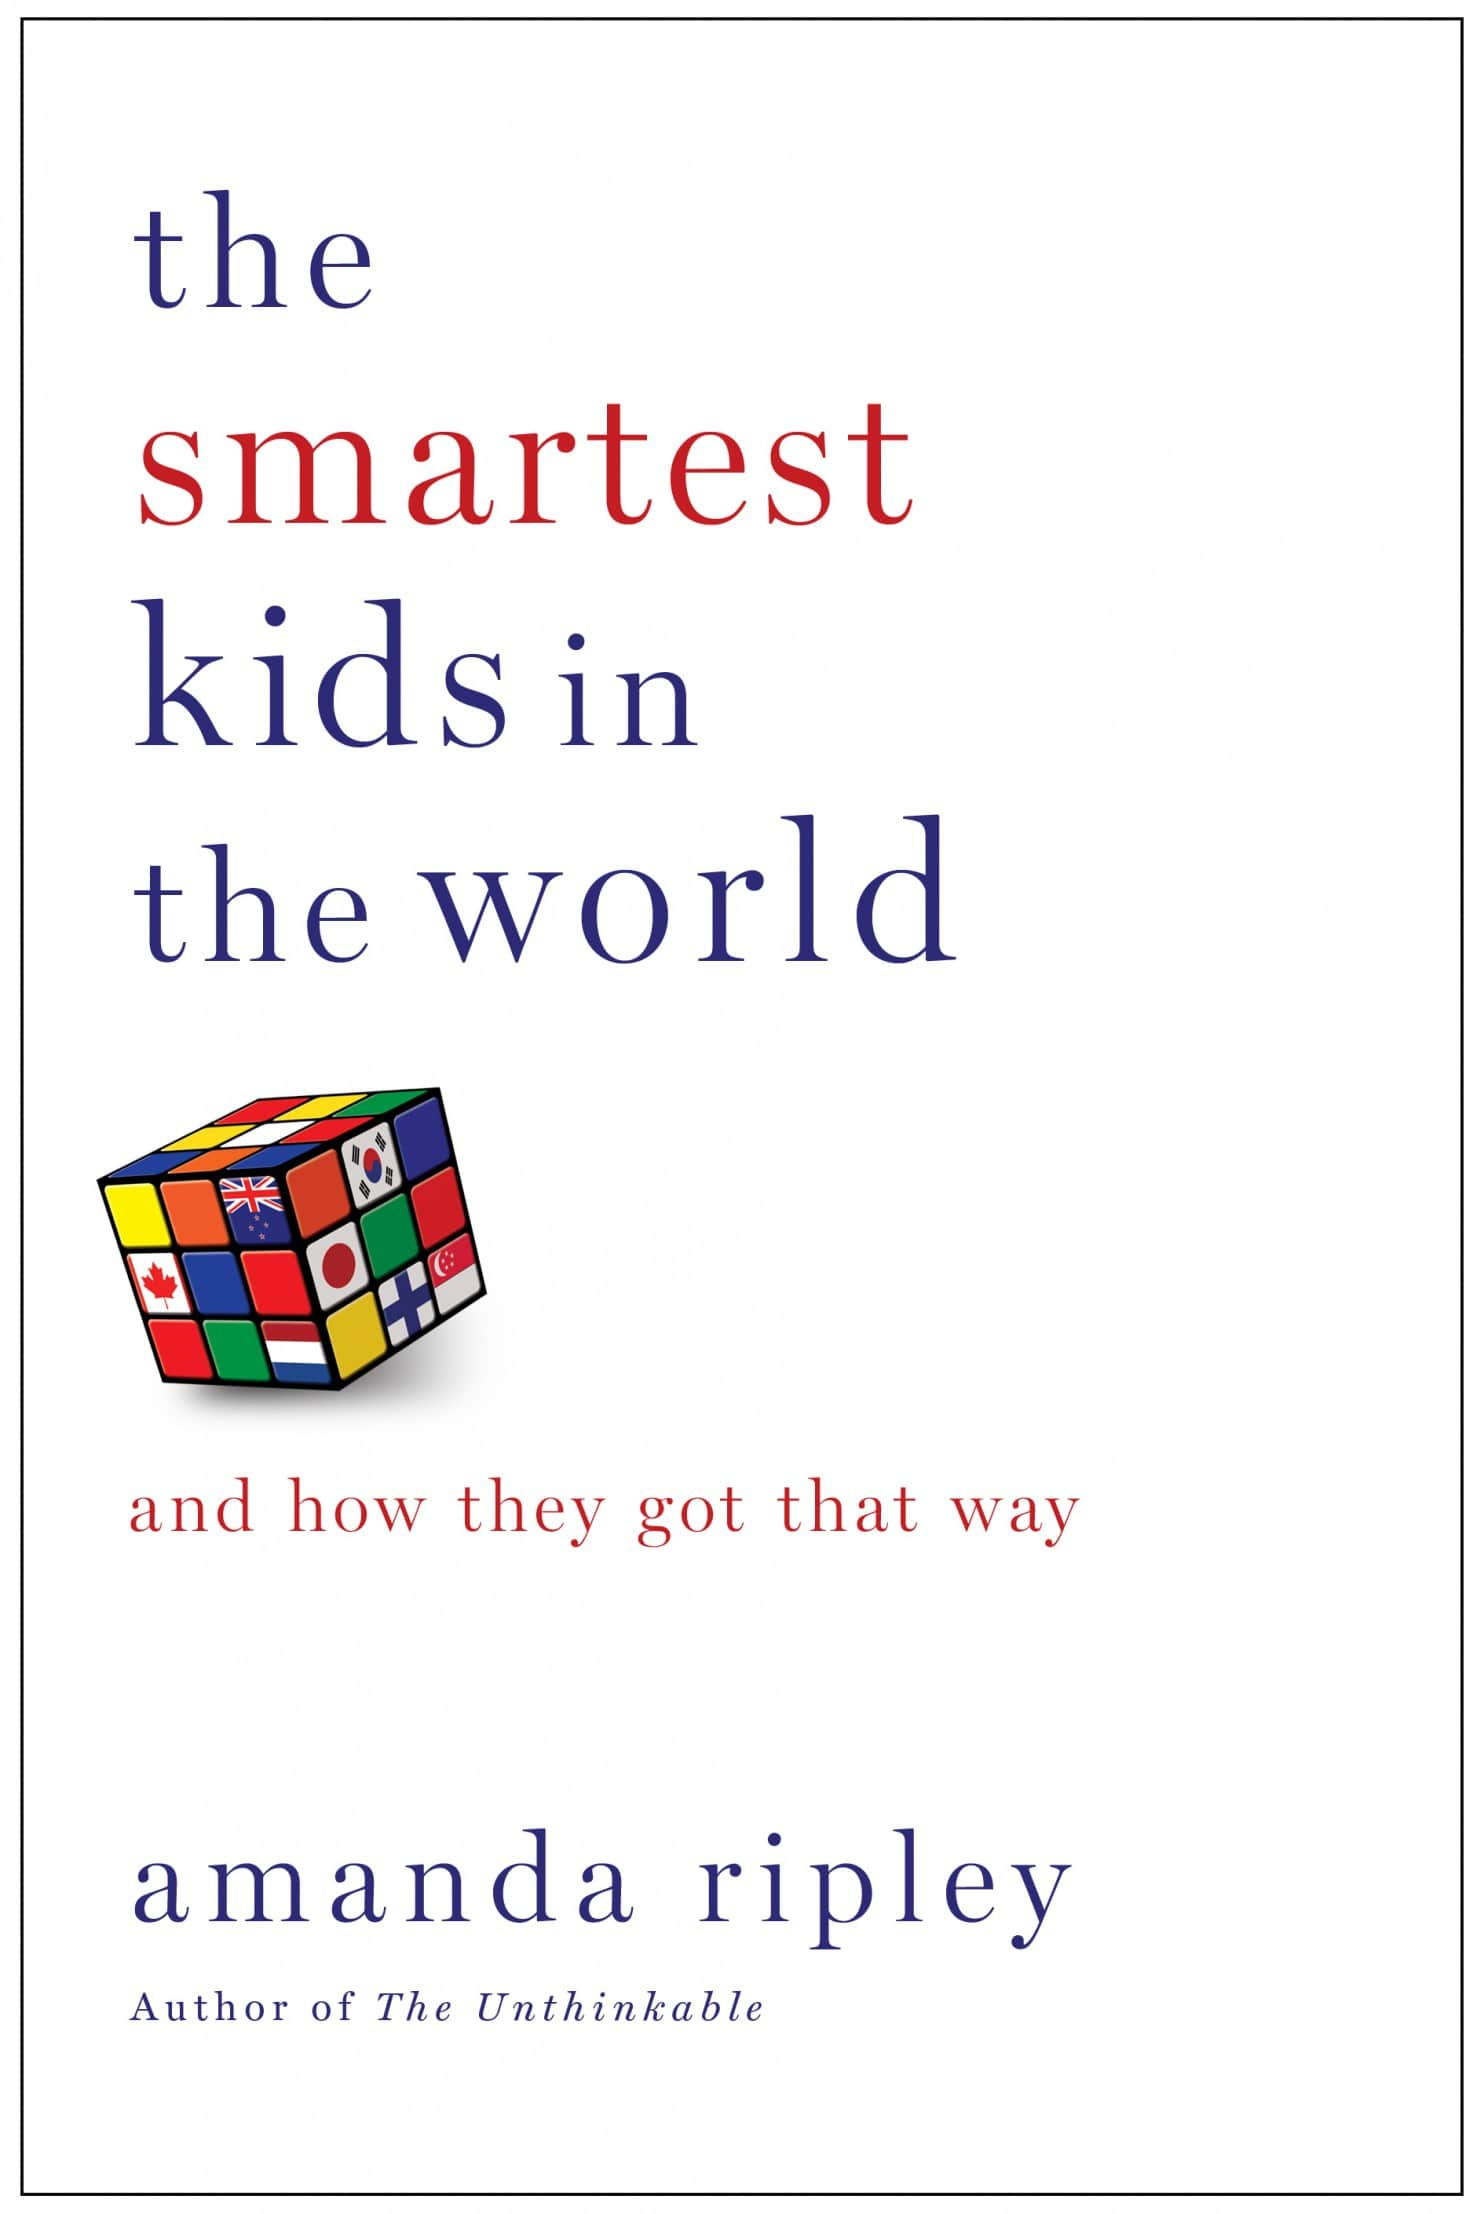 The Smartest Kids in the World: And How They Got That Way by Amanda Ripley  - Everyday Reading